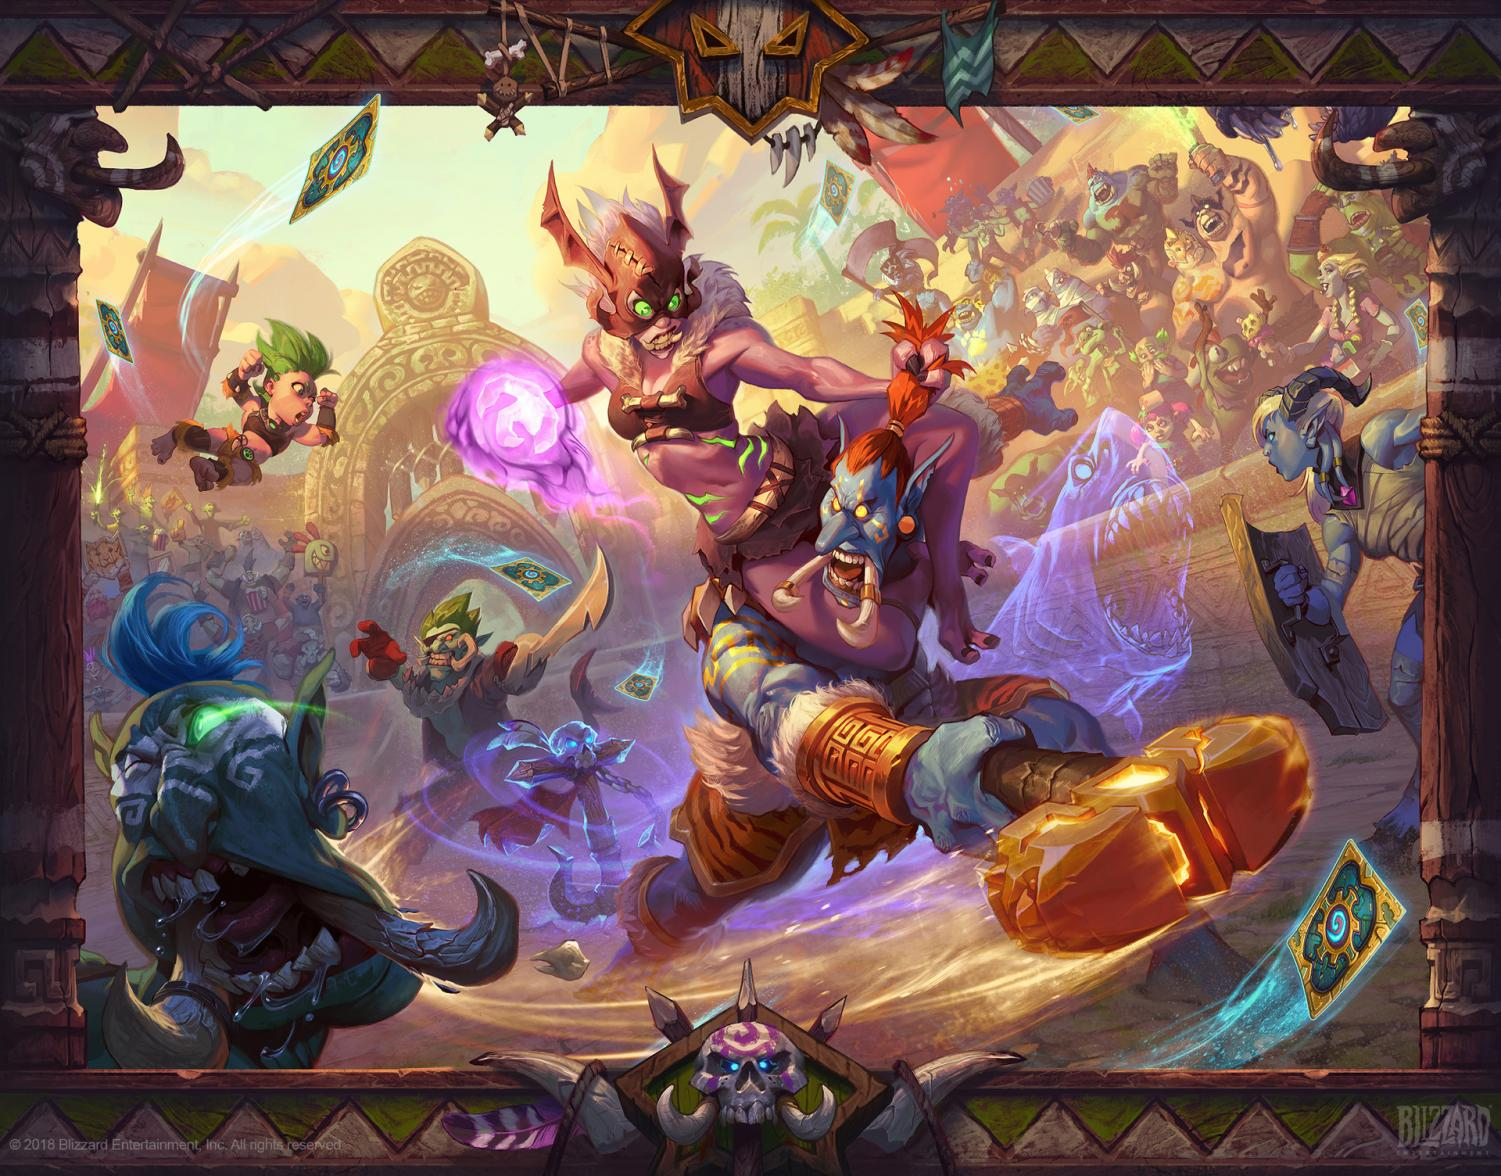 When the winning player of the Grandmasters Hearthstone Tournament made a statement supporting Hong Kong's protests on October 6, Blizzard Entertainment found themselves at the center of a free speech debate.